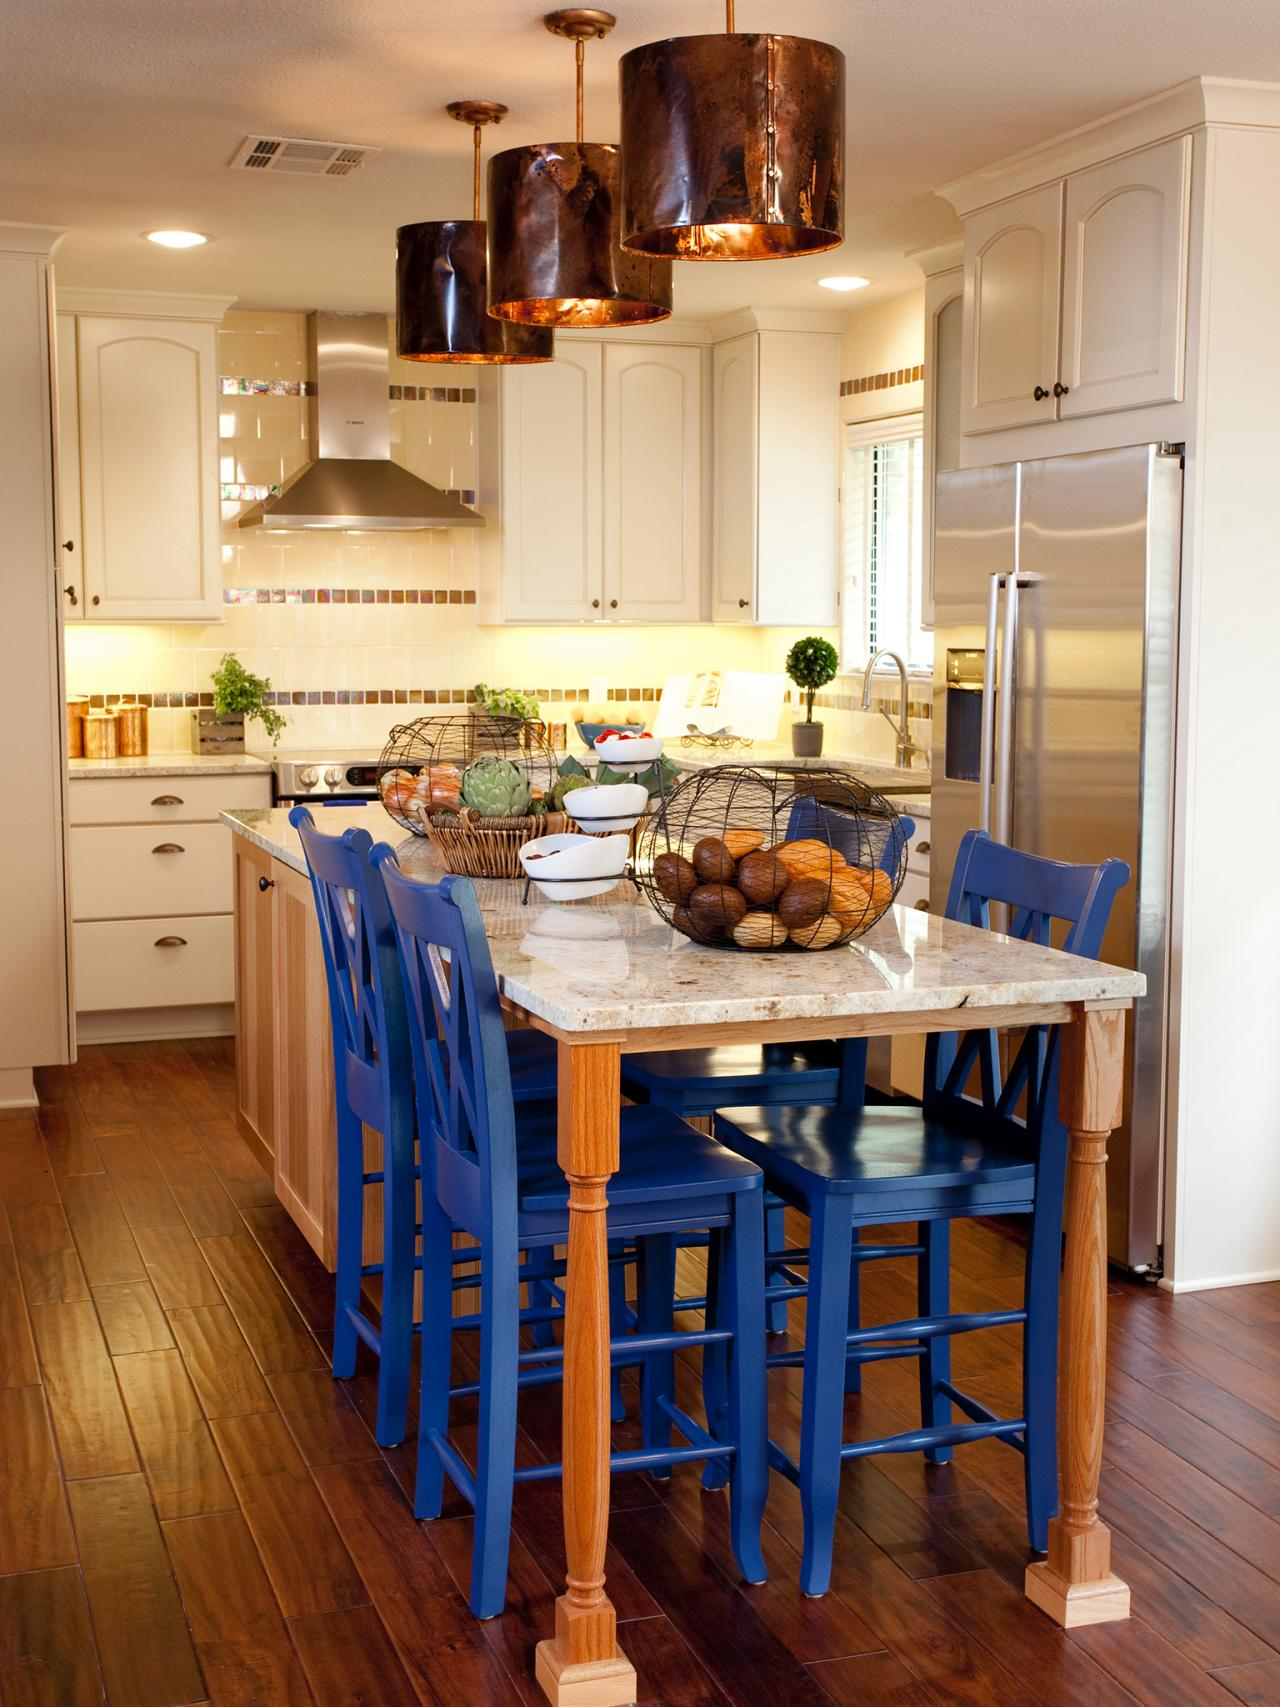 Kitchen Seating Options Ideas For Chairs And Stools